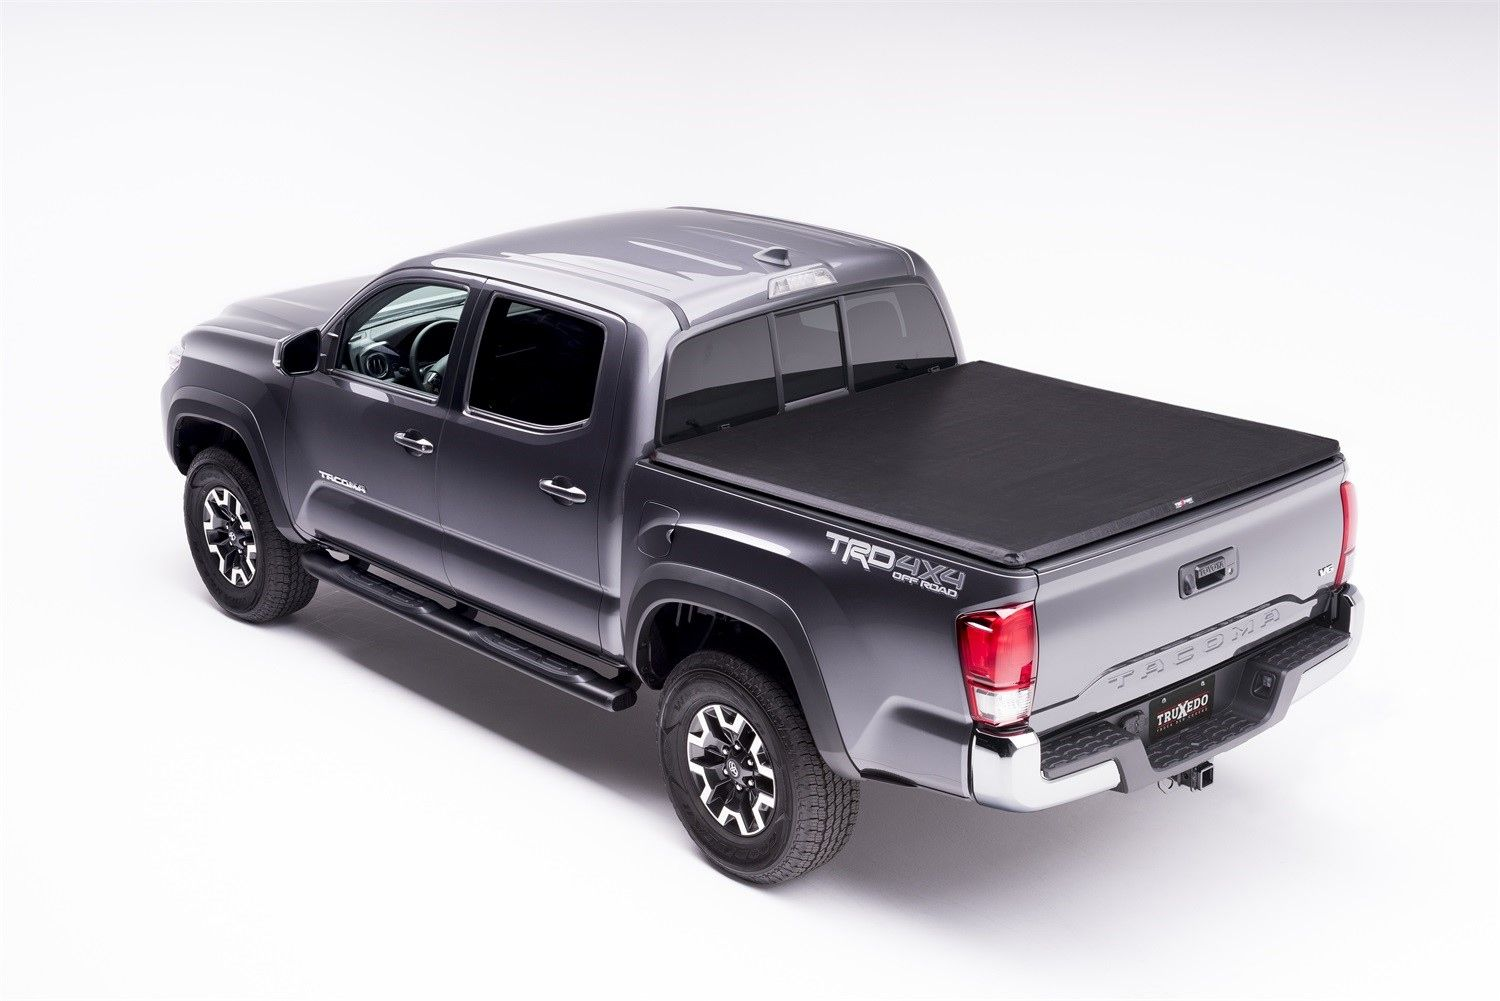 Pin by StreetsideAuto on Truxedo Tonneau cover, Tri fold